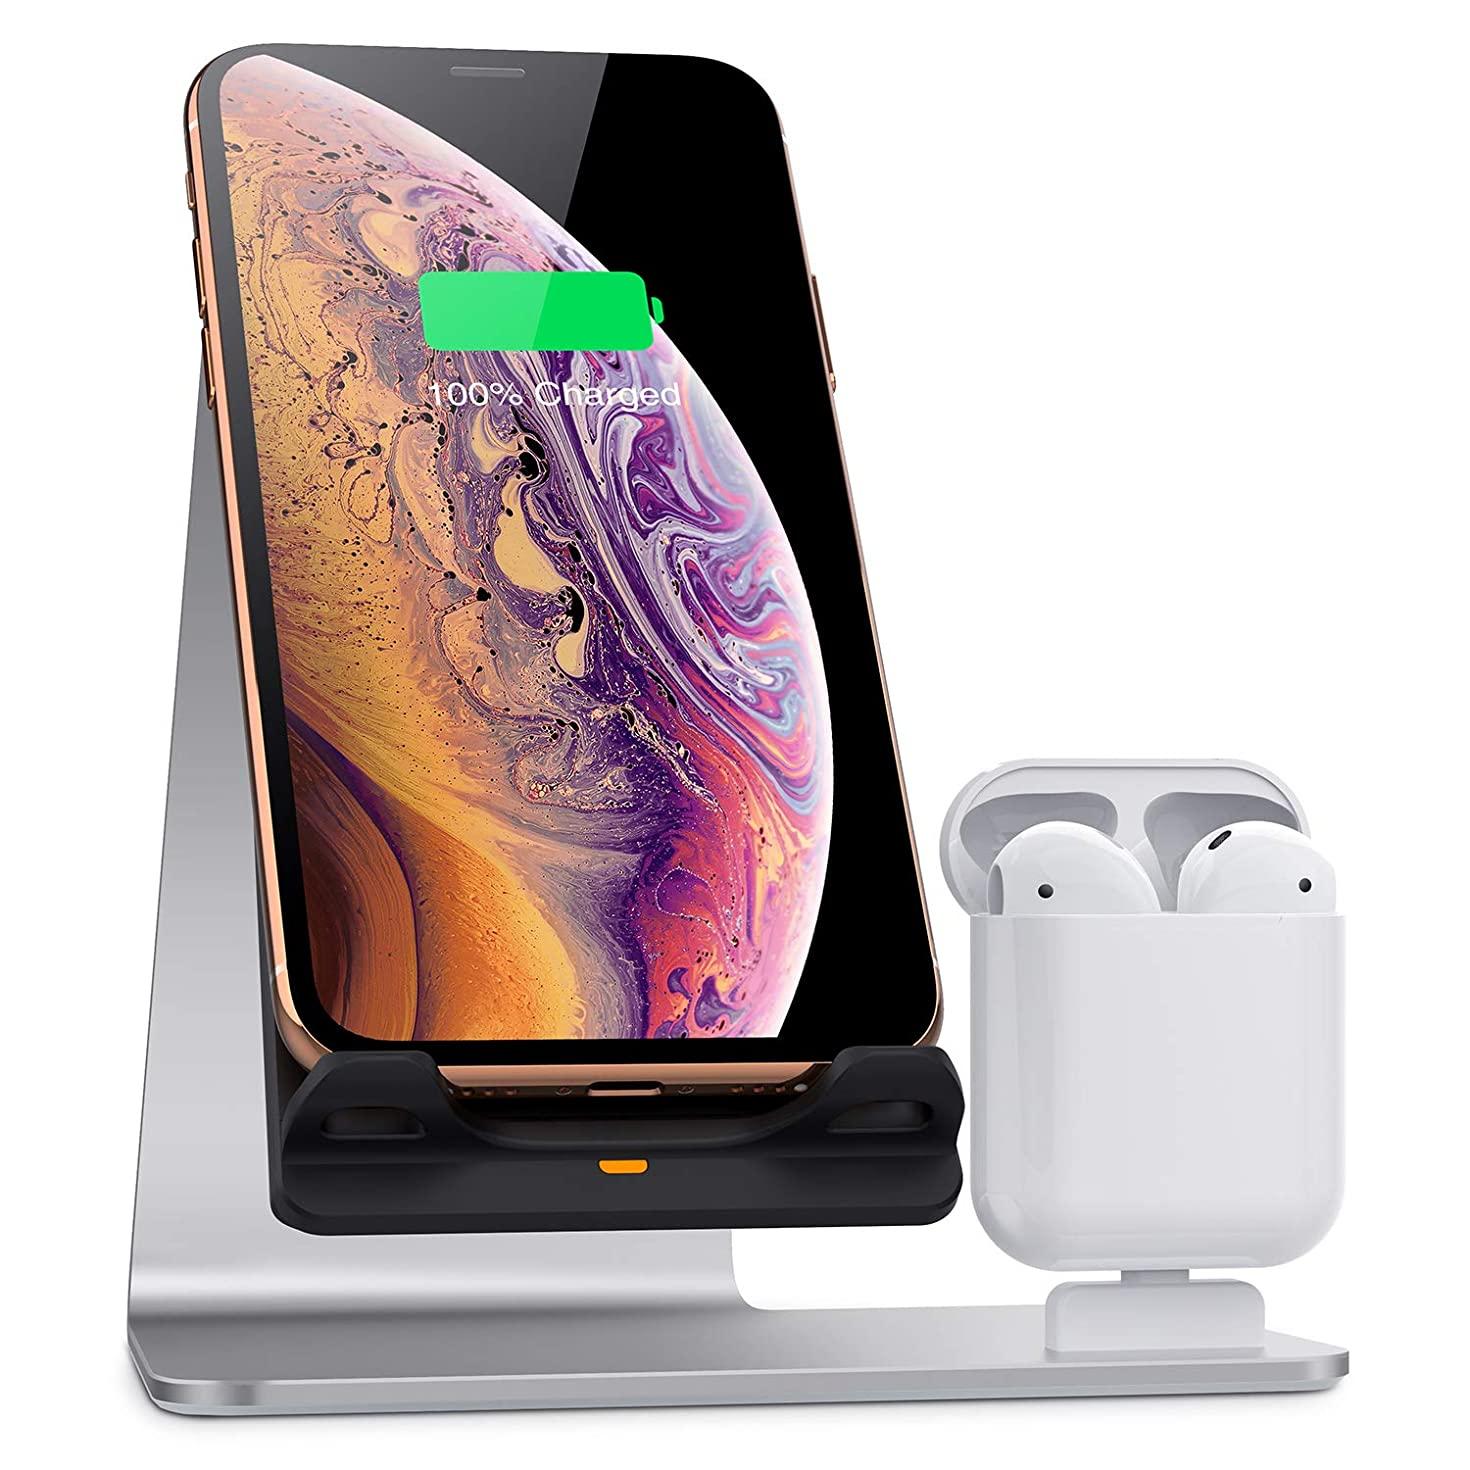 Bestand Wireless Charger Stand, Fast Wireless Charger Dock Compatible with Airpods/iPhone X/iPhone Xs/iPhone Xs Max/iPhone XR/iPhone 8 Plus/iPhone 8, Silver